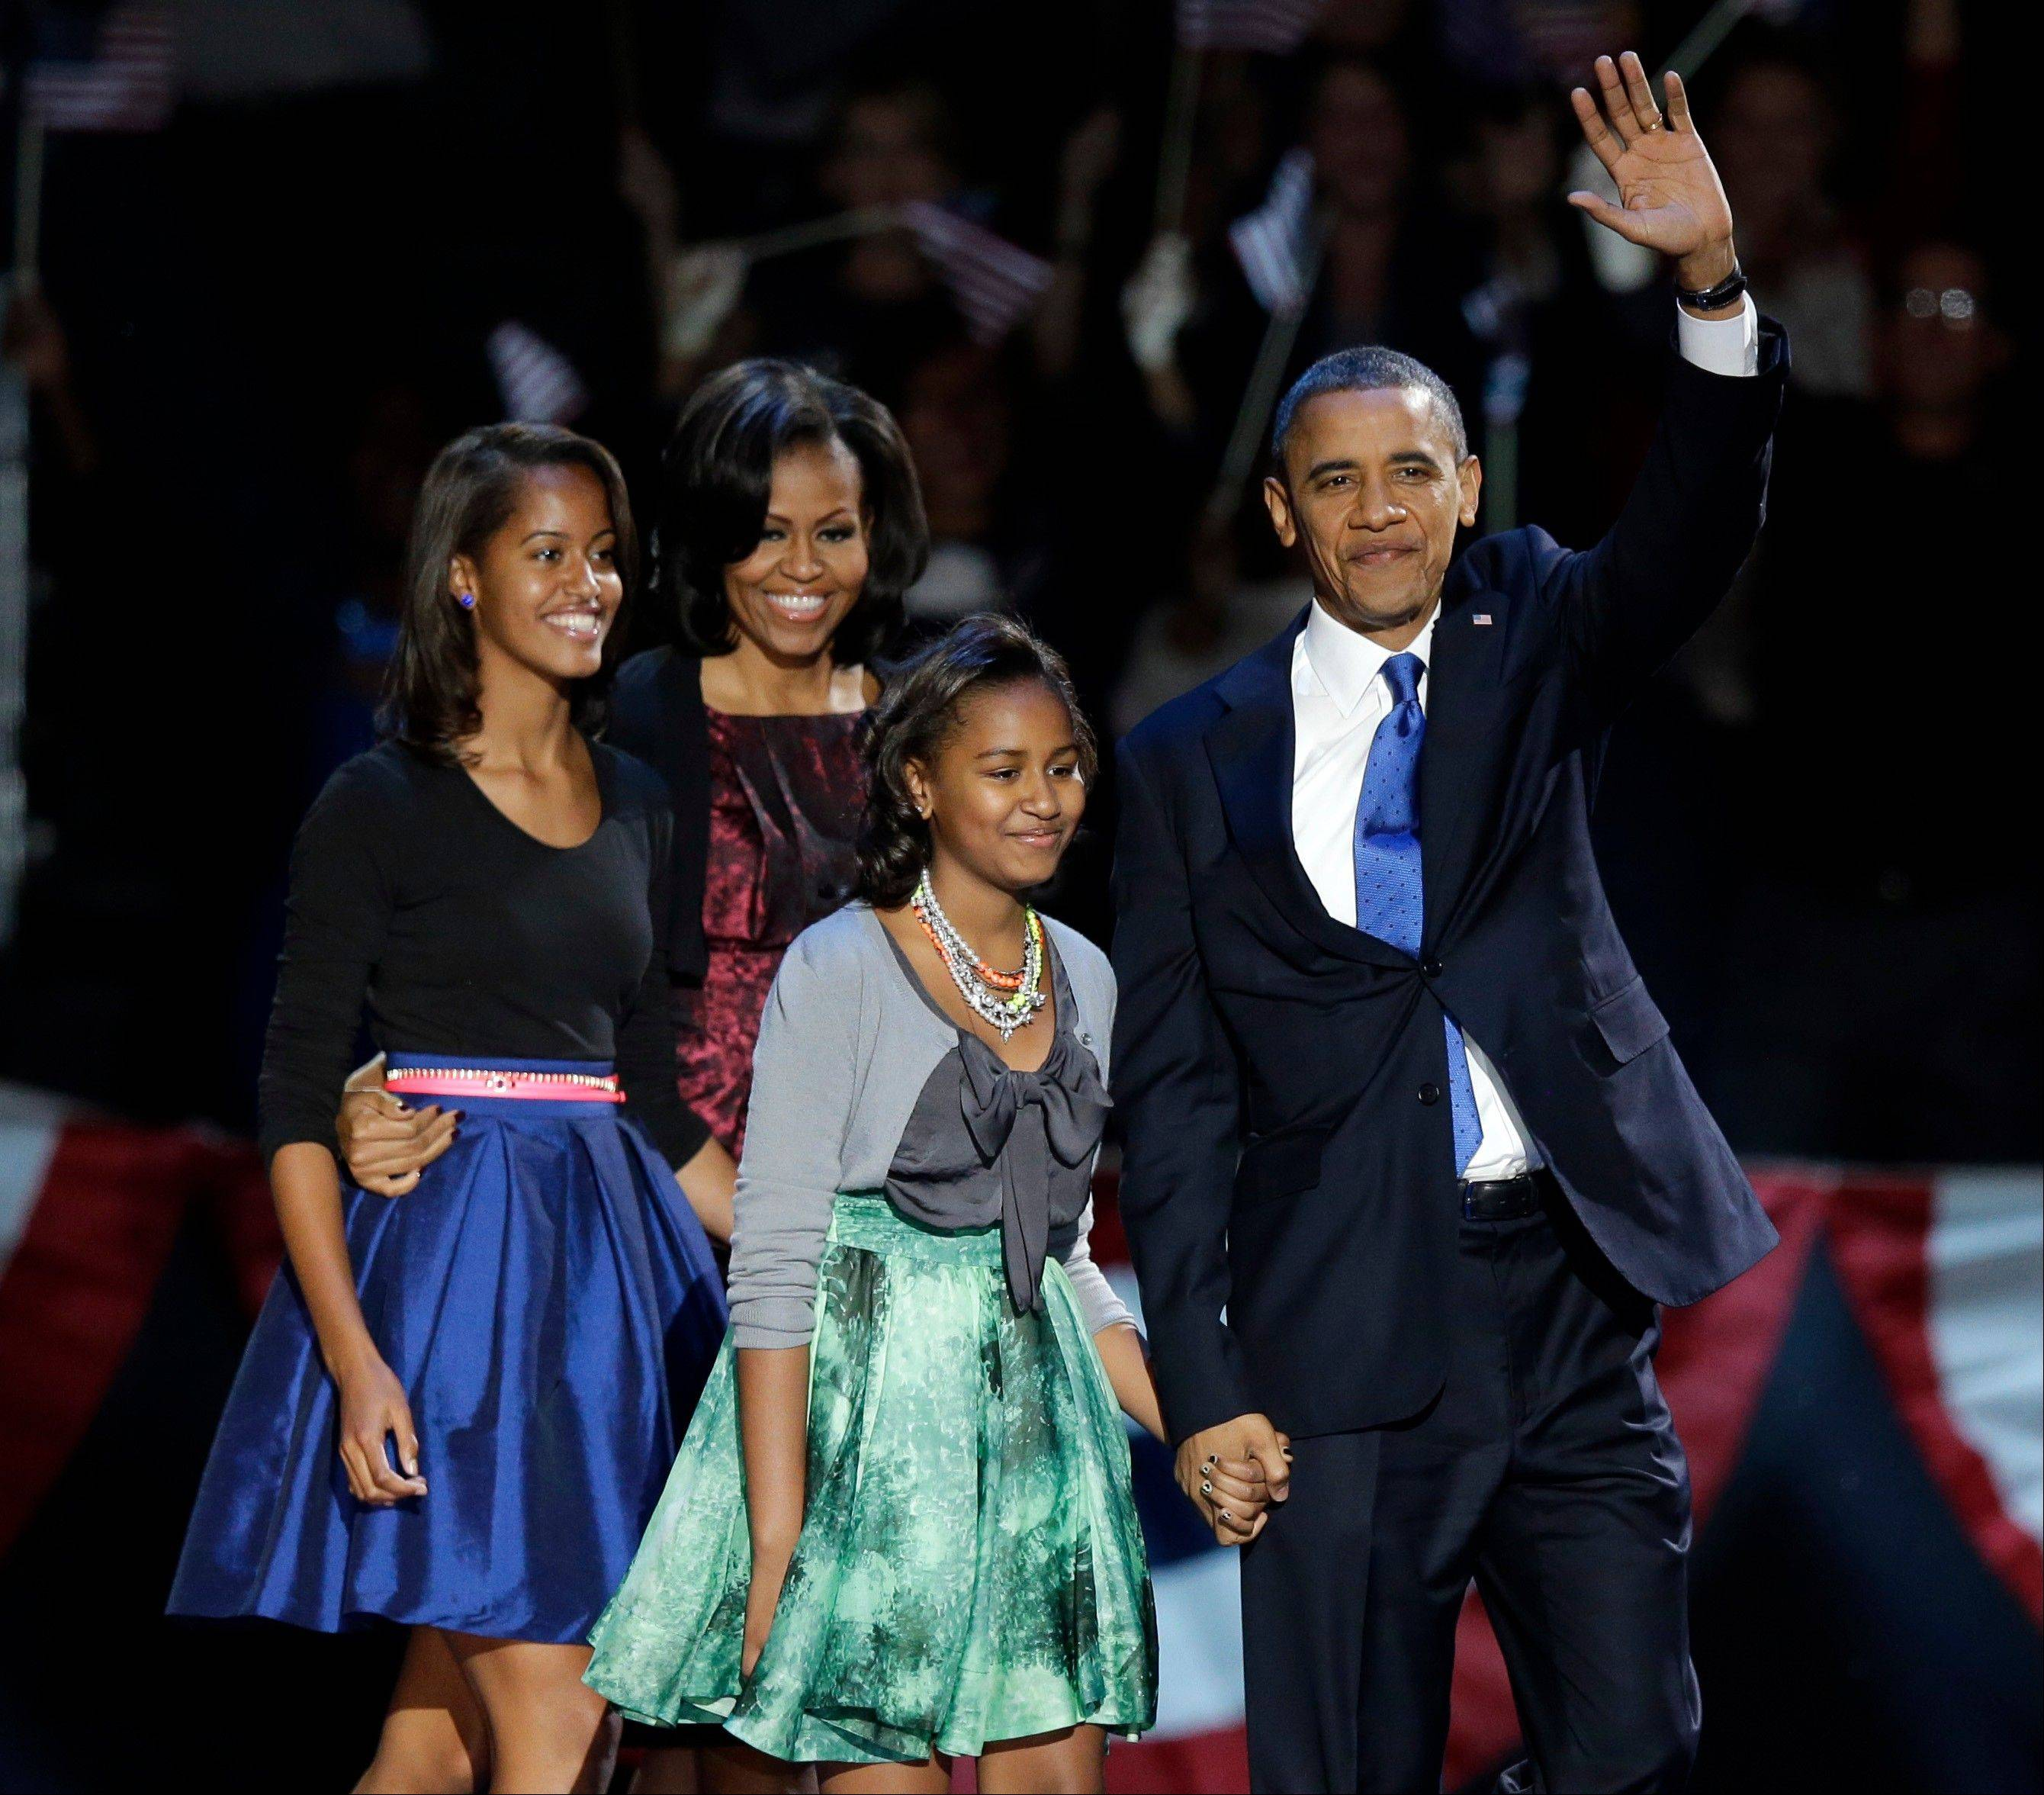 Some vocal critics view this as a sign of the apocalypse, but the majority of American voters are happy to see a victorious President Barack Obama walk onstage with first lady Michelle Obama and daughters Malia and Sasha at his Election Night party early Wednesday.